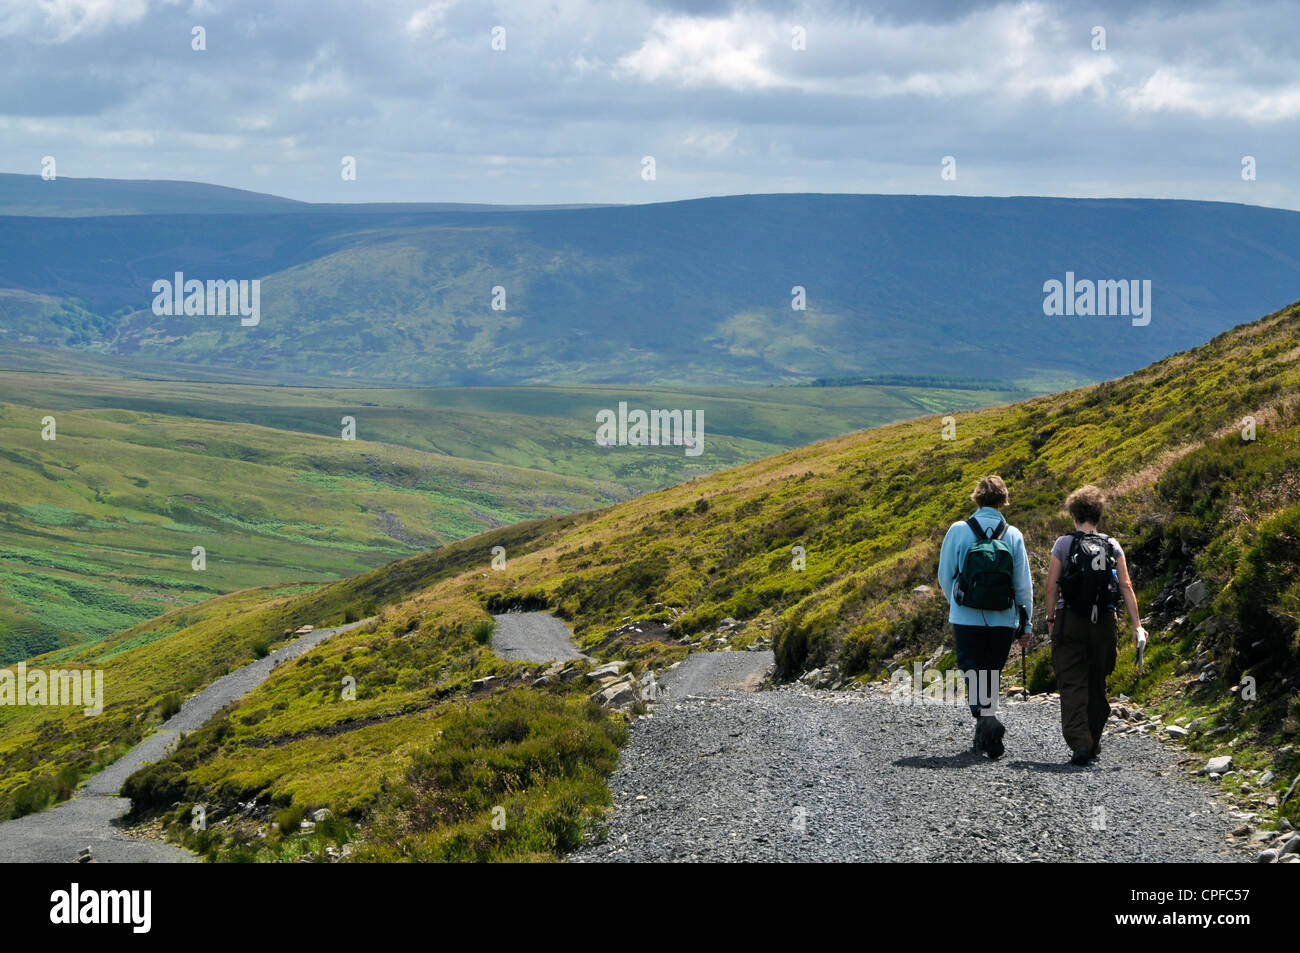 Walkers on Ward's Stone, in the Forest of Bowland AONB - Stock Image